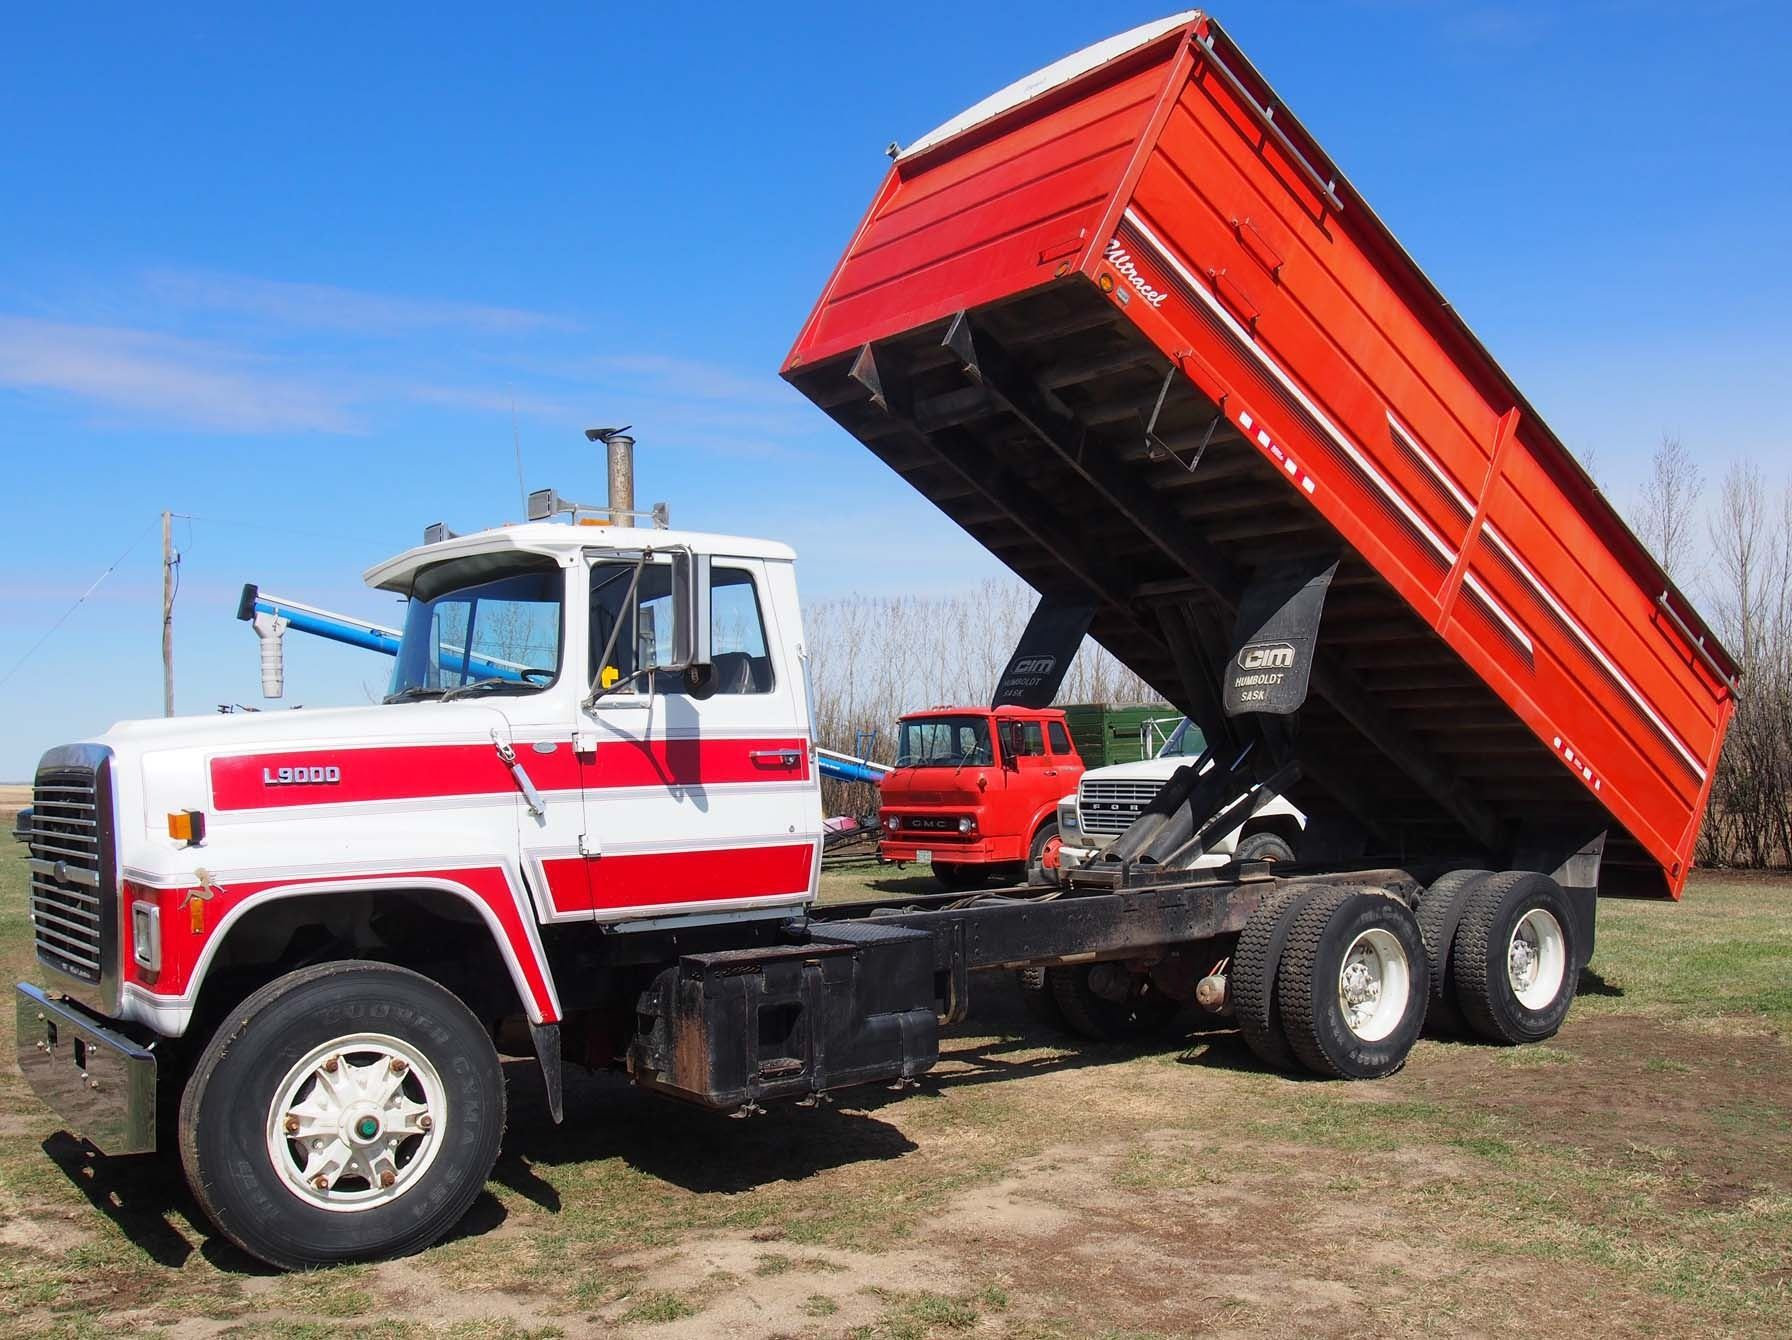 image 11 1988 ford l9000 tandem truck 855 cummings engine 20 box and  [ 1792 x 1340 Pixel ]